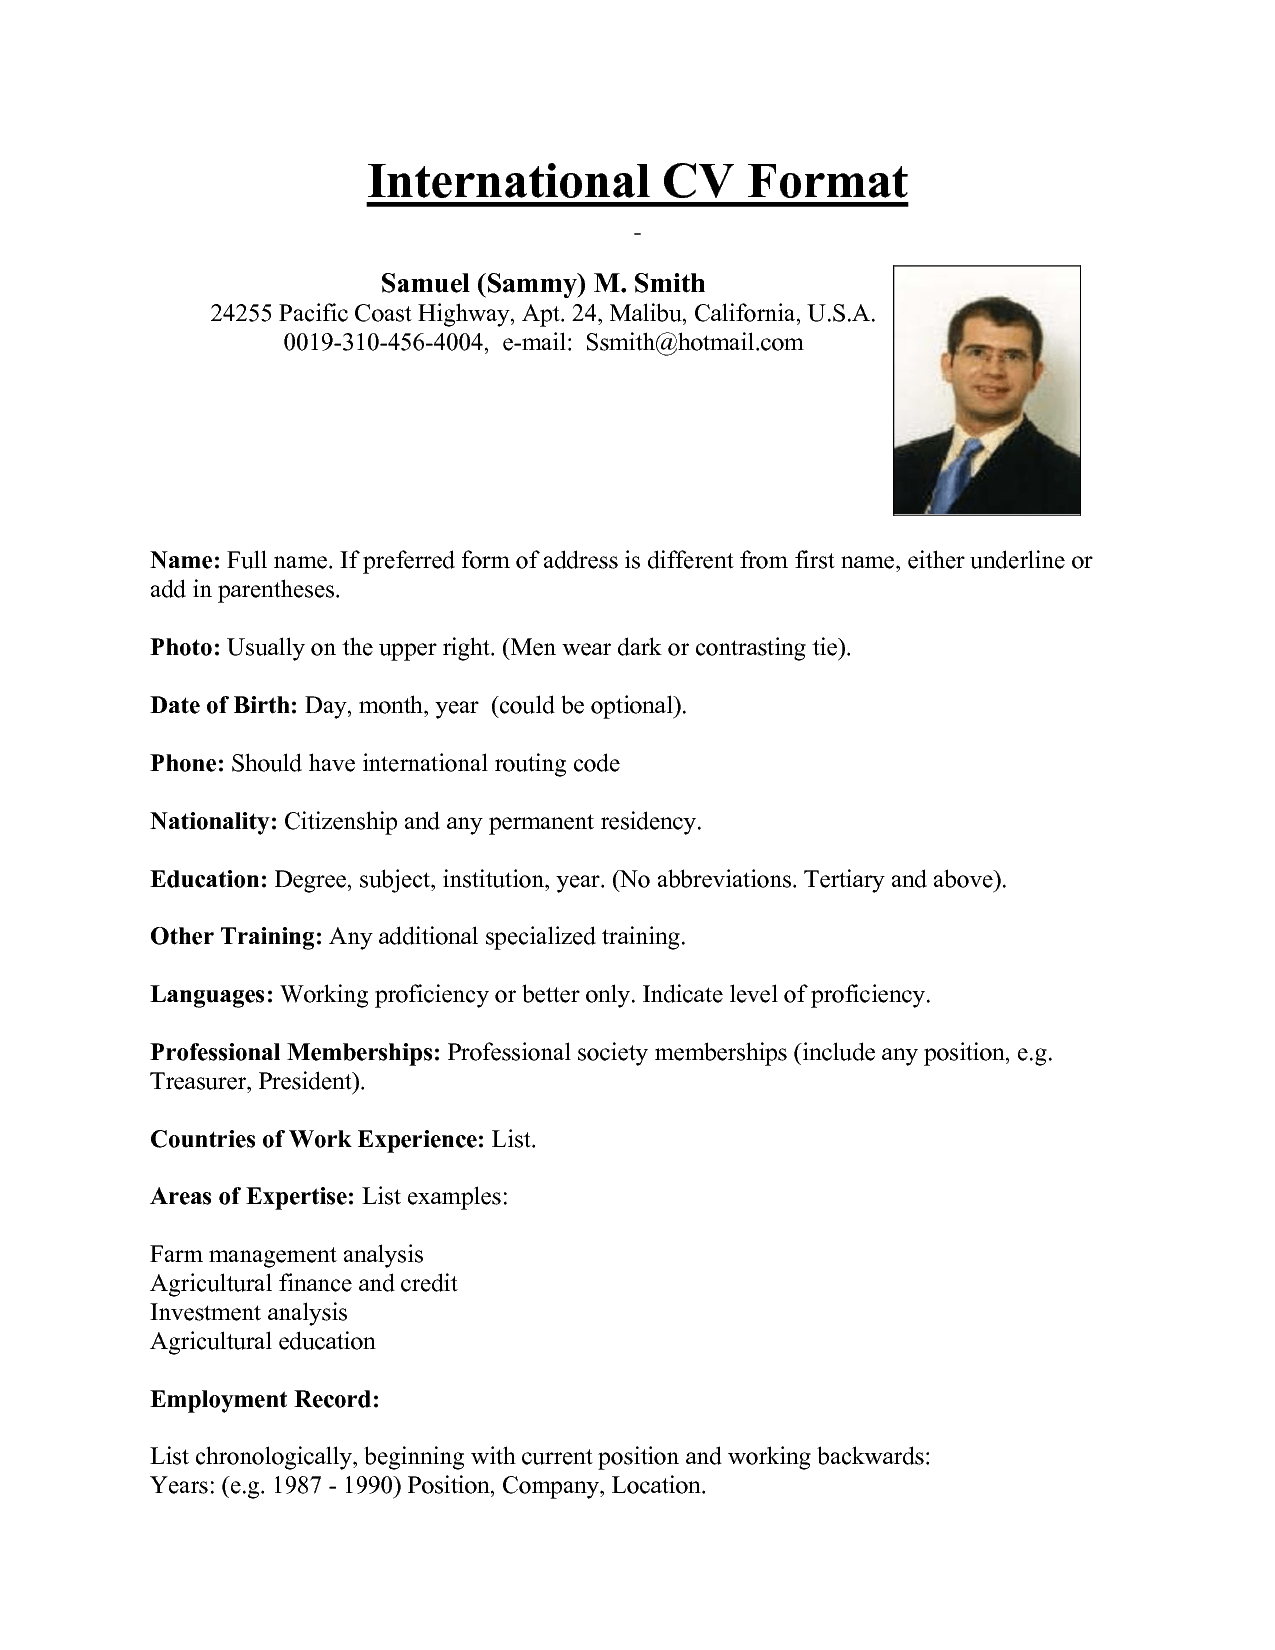 english cv example us sample customer service resume english cv example us resumes and curriculum vitae cv american university english cv example us english